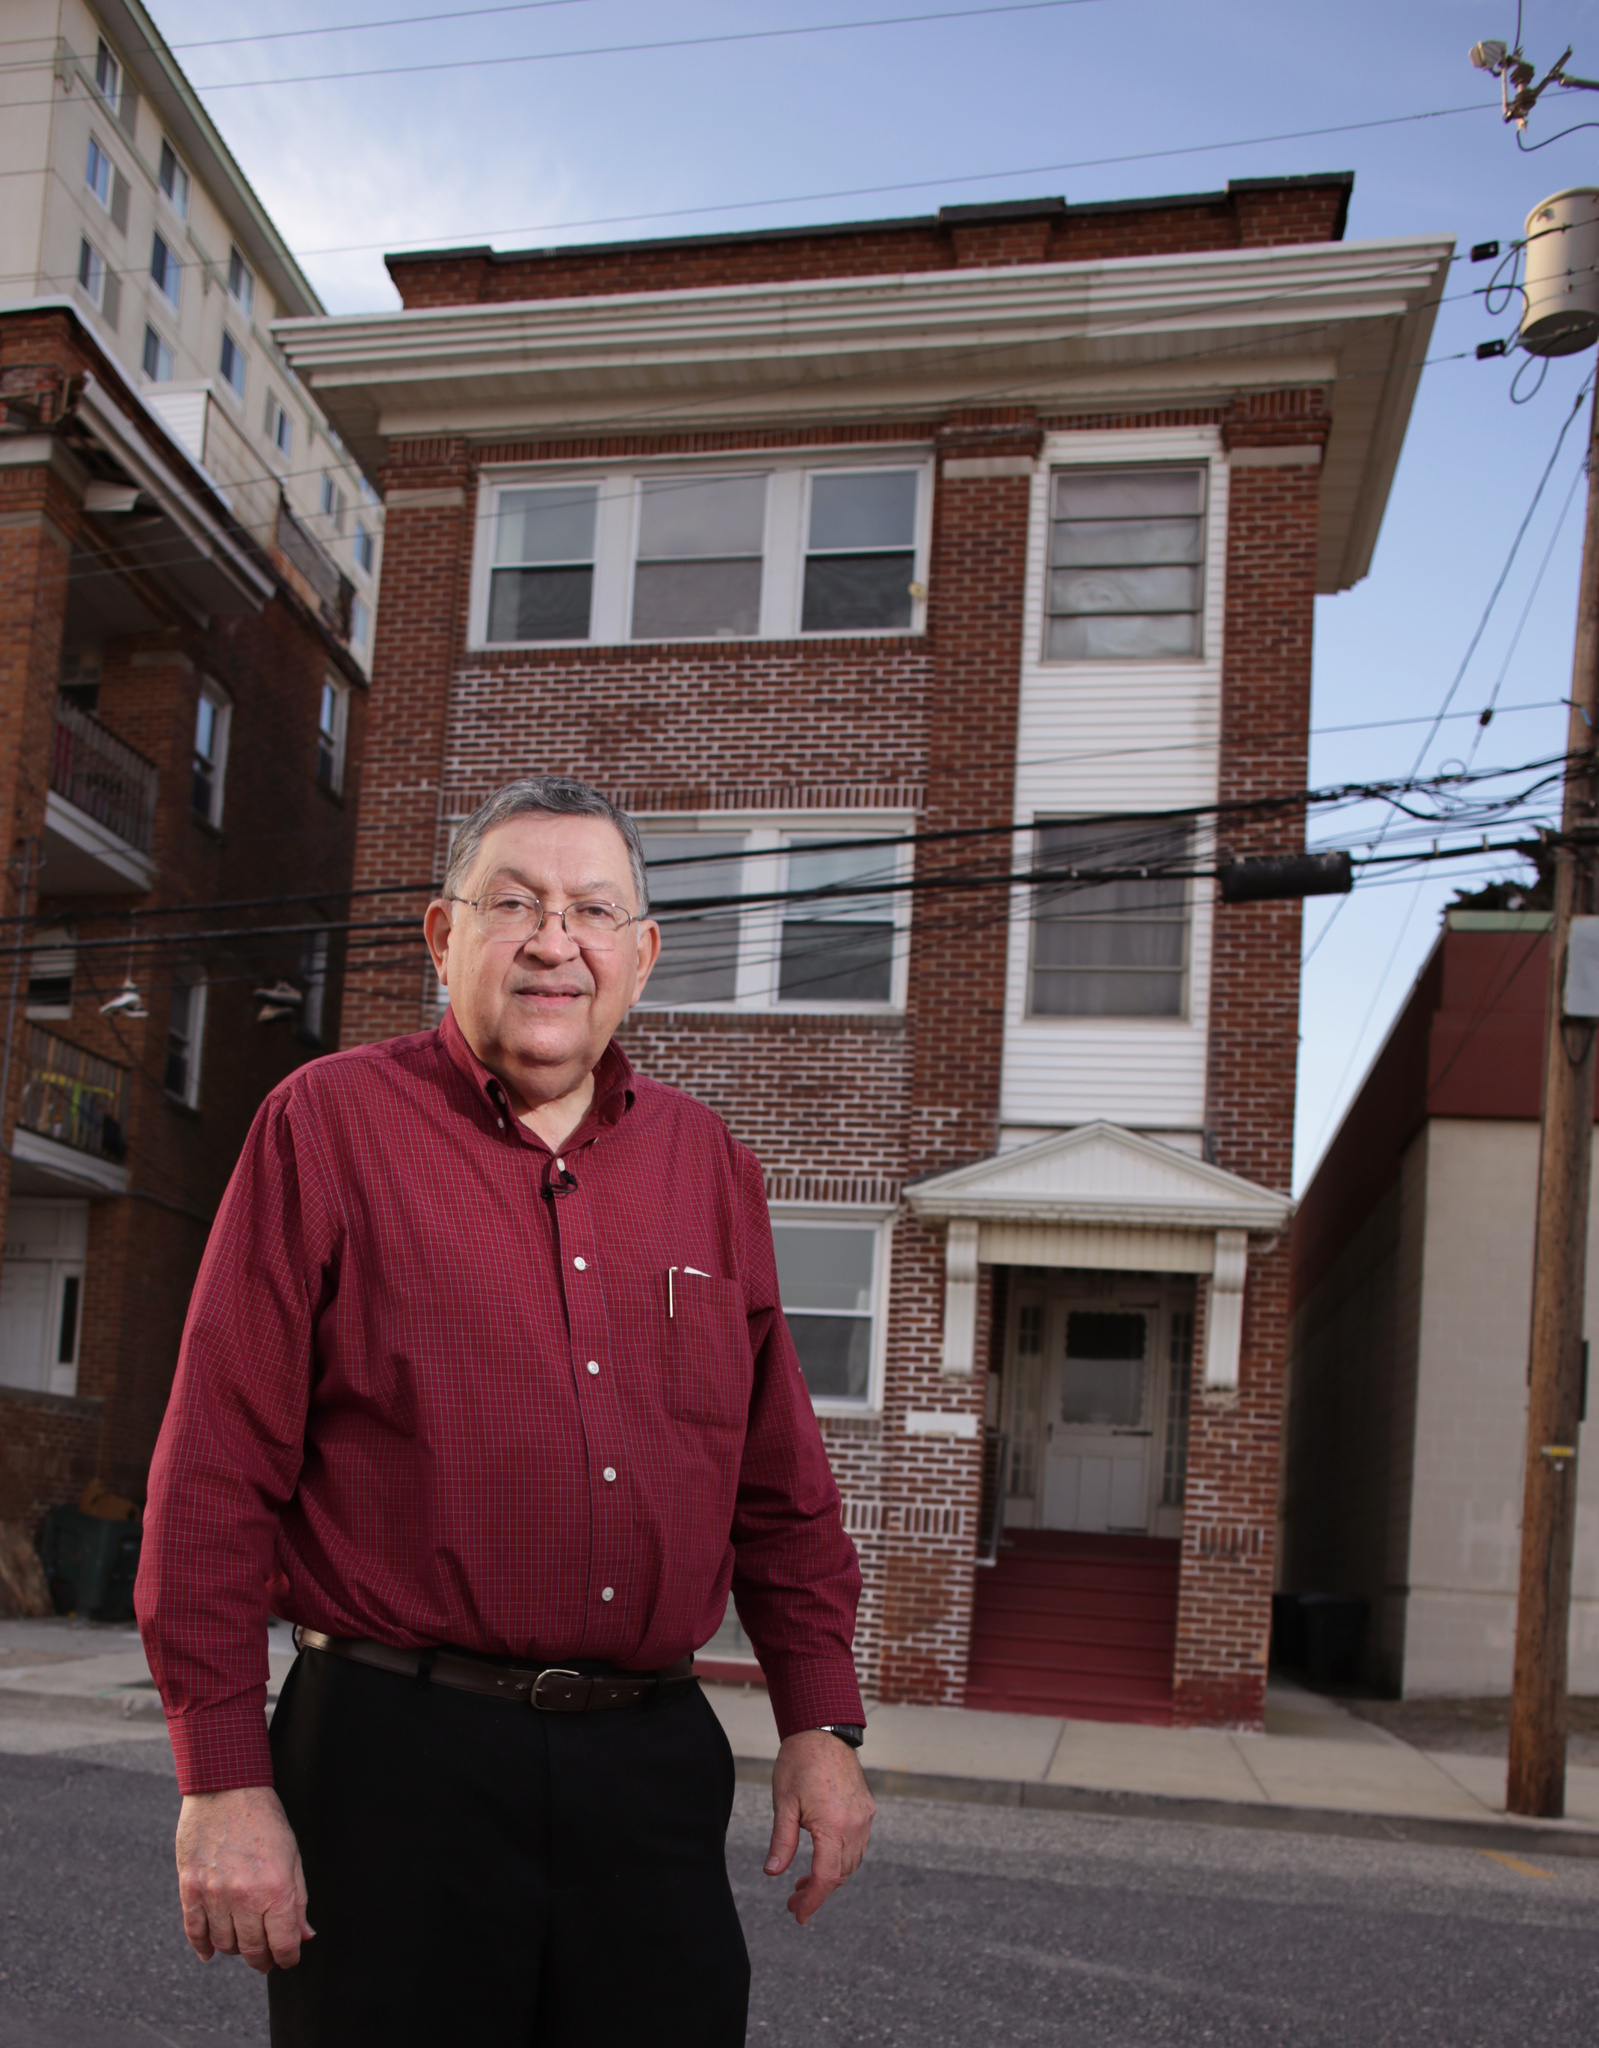 Atlantic City Eminent Domain Charlie-Birnbaum-IFJ_3618